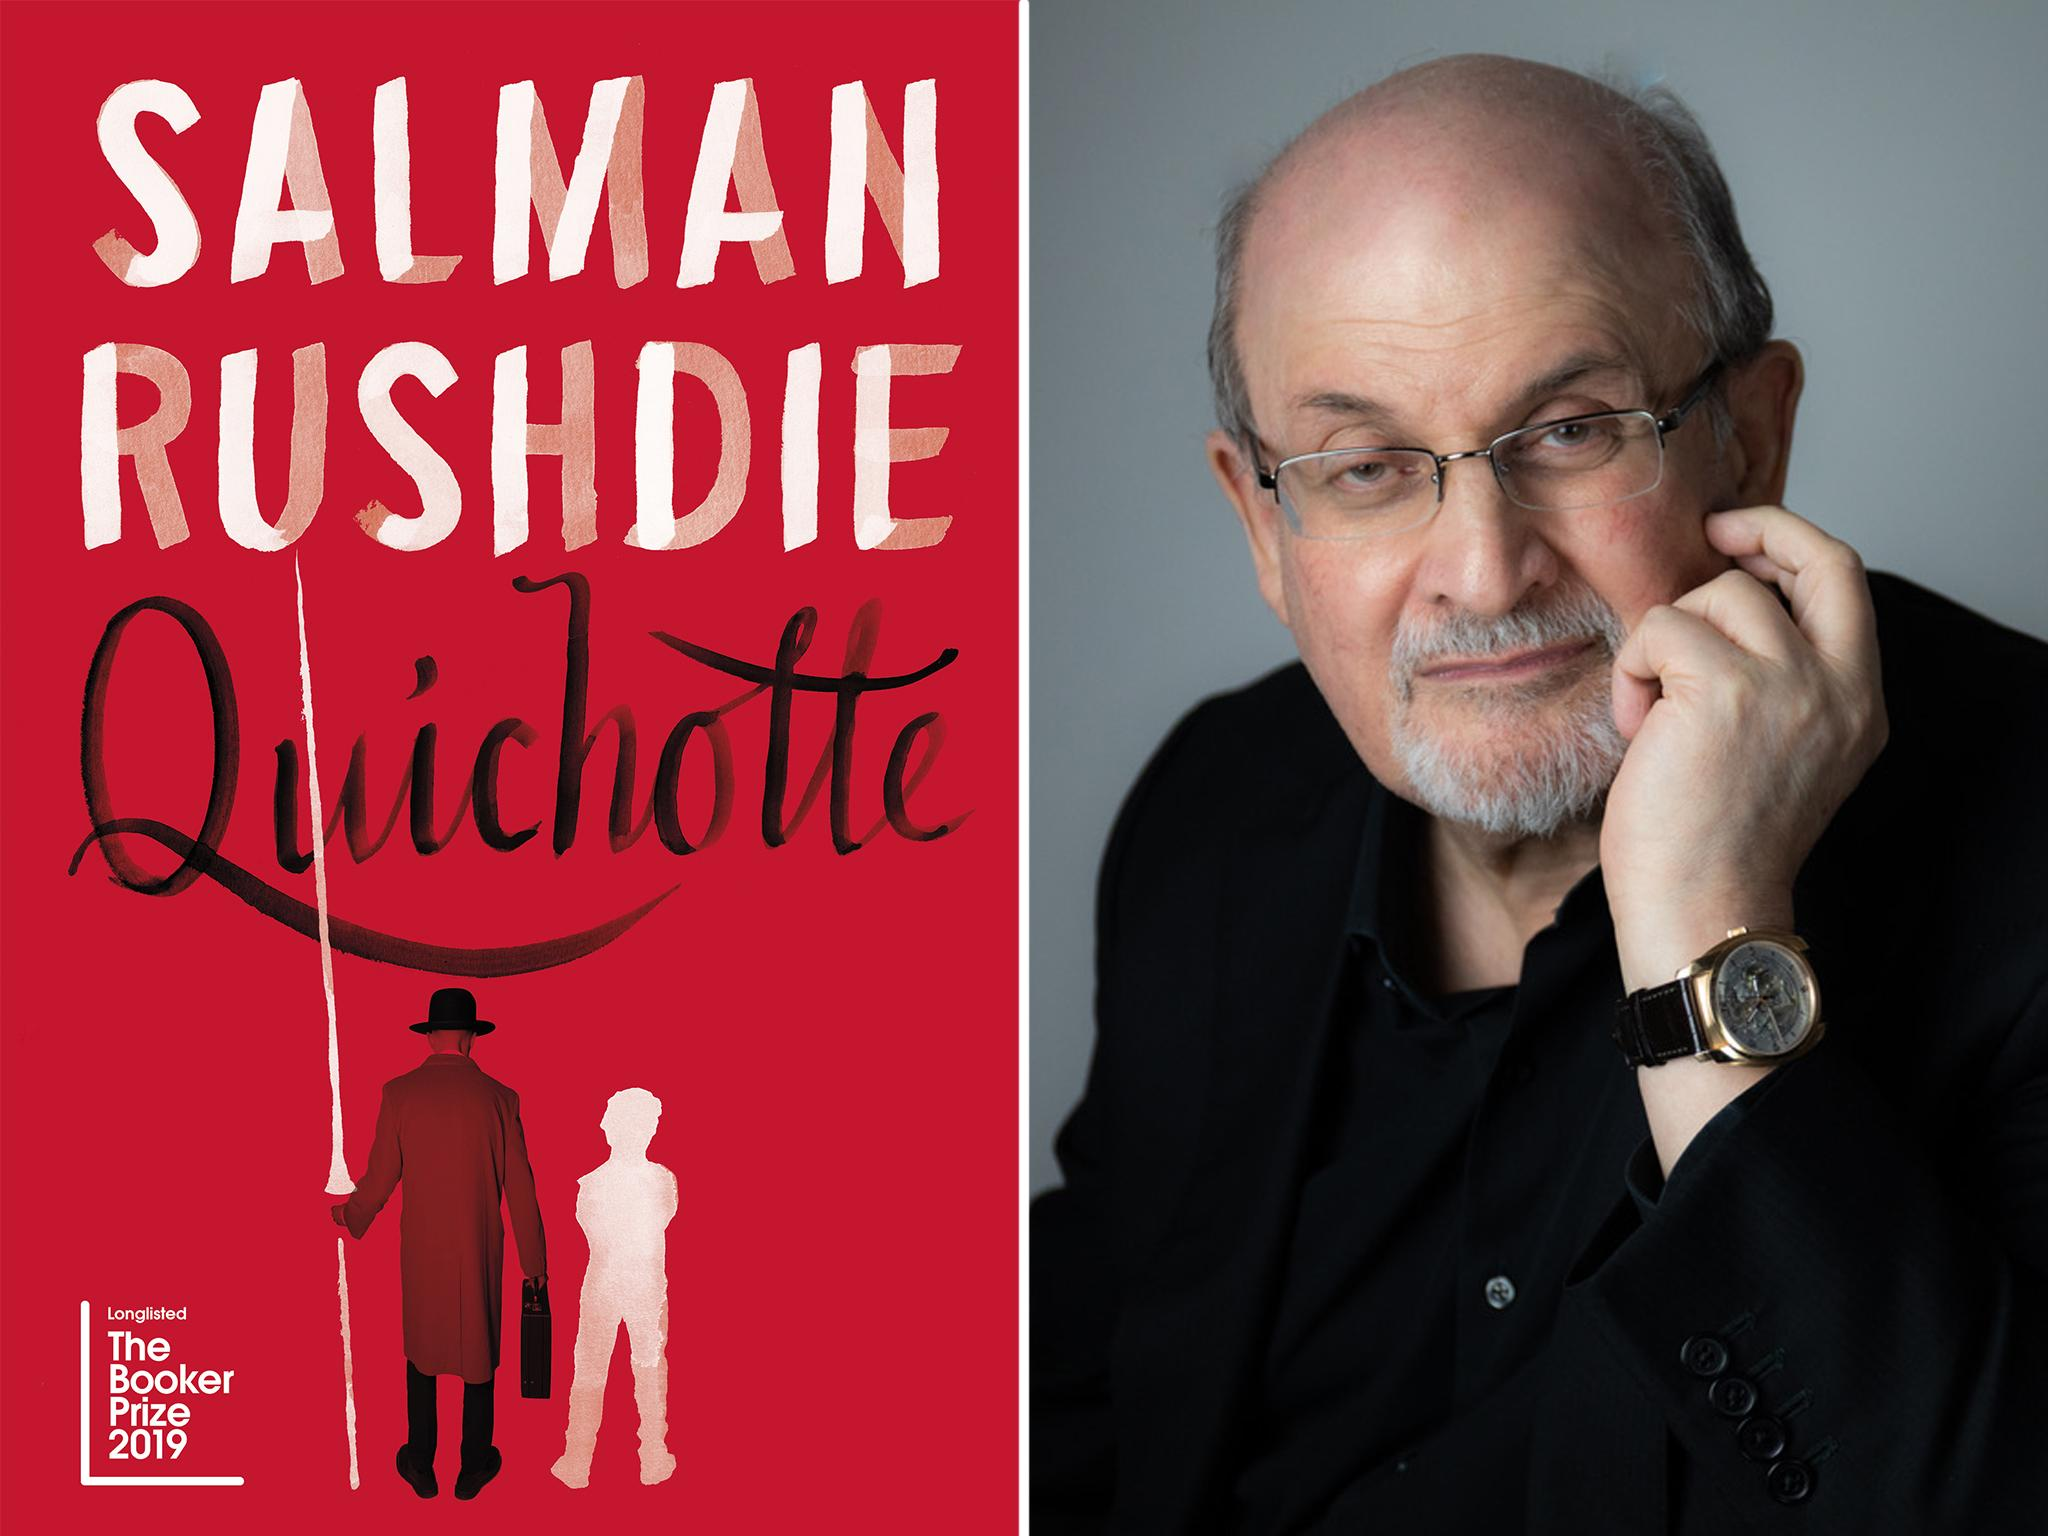 Quichotte by Salman Rushdie review: Bogged down by exhausting accumulations